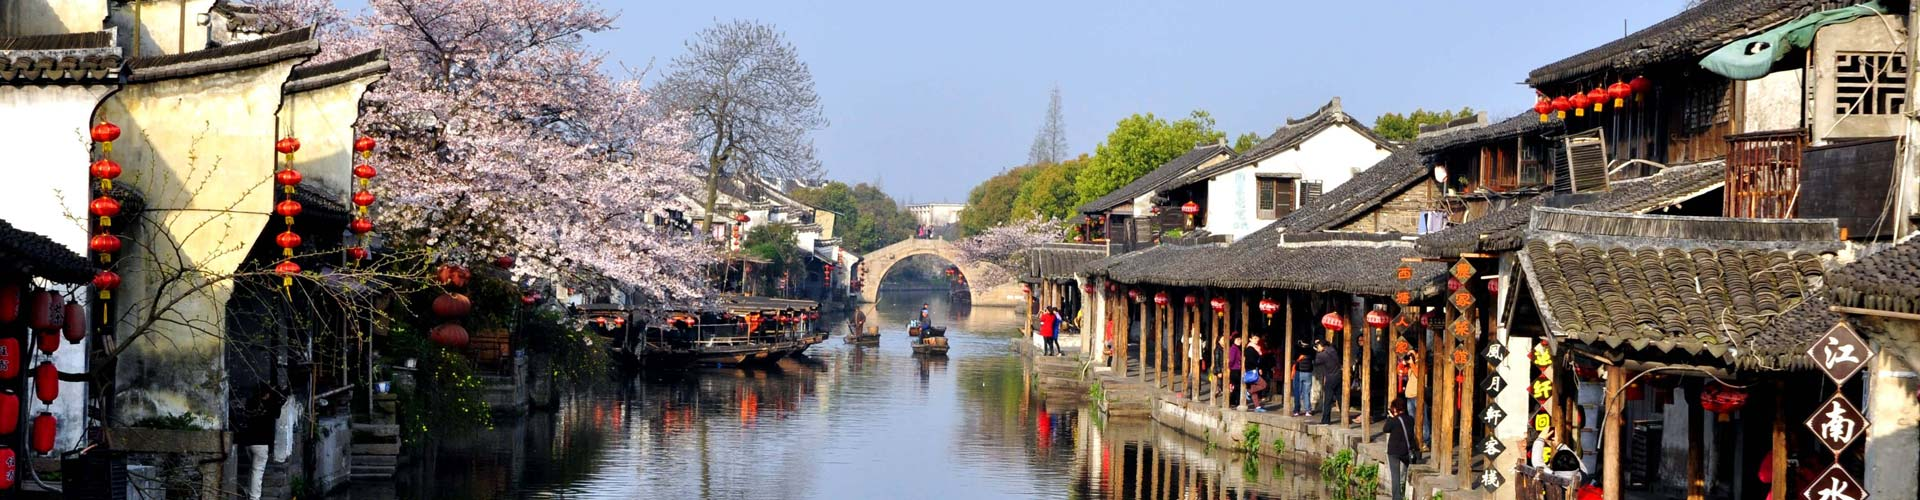 Xitang Water Town One Day Tour